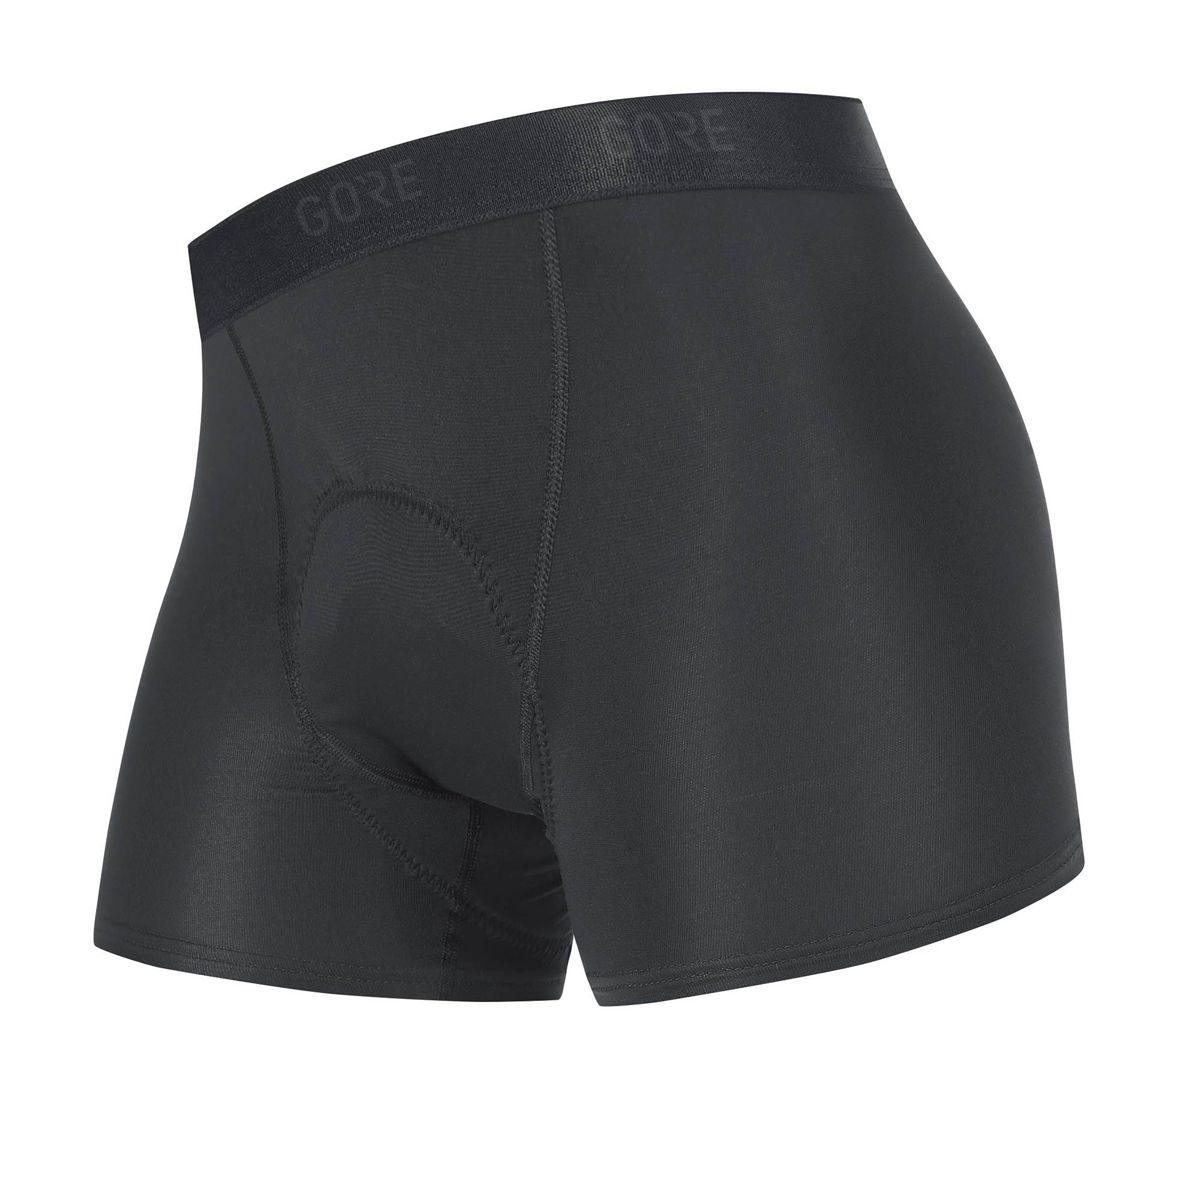 C3 WOMEN BASE LAYER SHORTY+ Damen Radunterhose